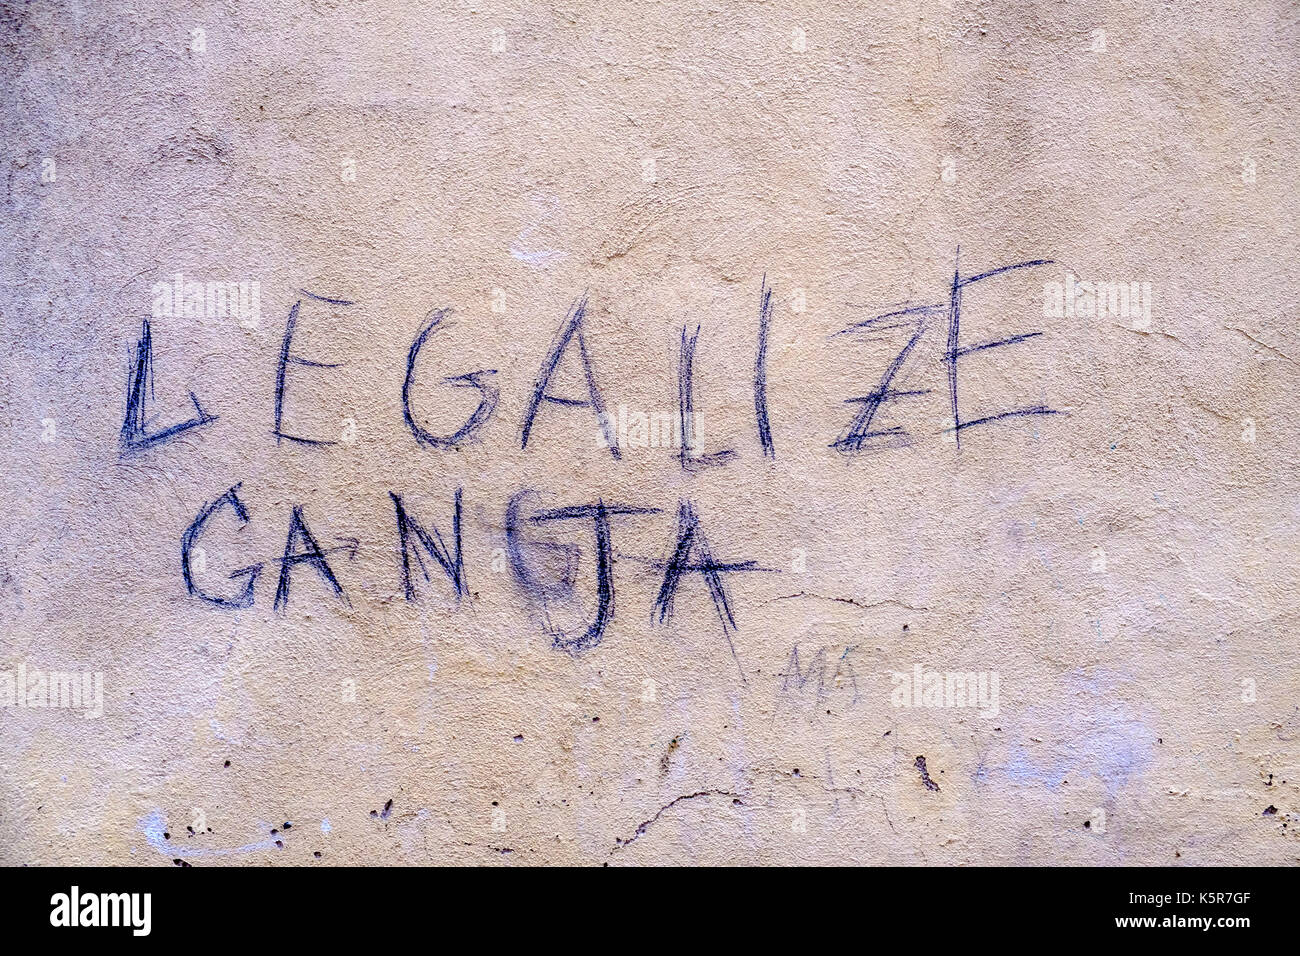 Legalize Ganja, graffity for legalizing marihuana written at a white house wall - Stock Image